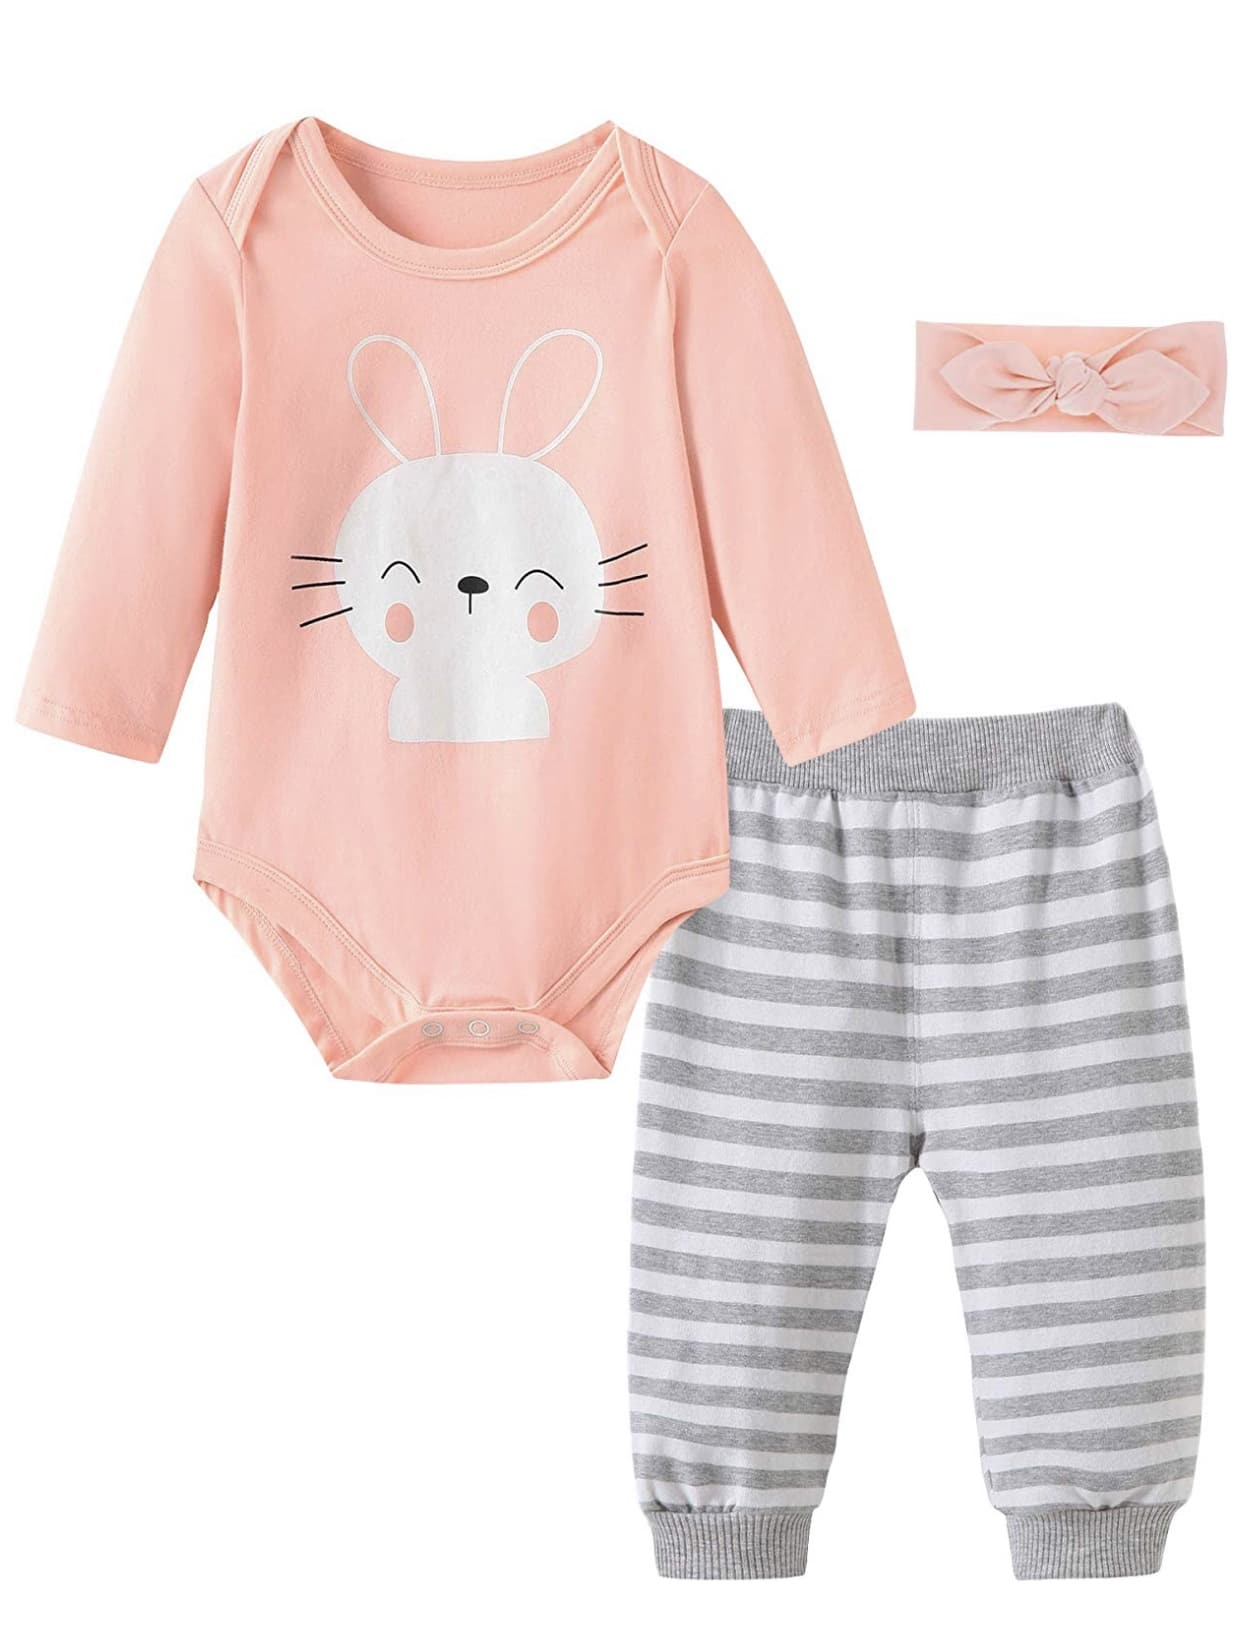 Baby Girls Clothes - Infant Romper Bodysuit + Headband 3pcs Fashion Outfits Set from $  8.39 @ Amazon